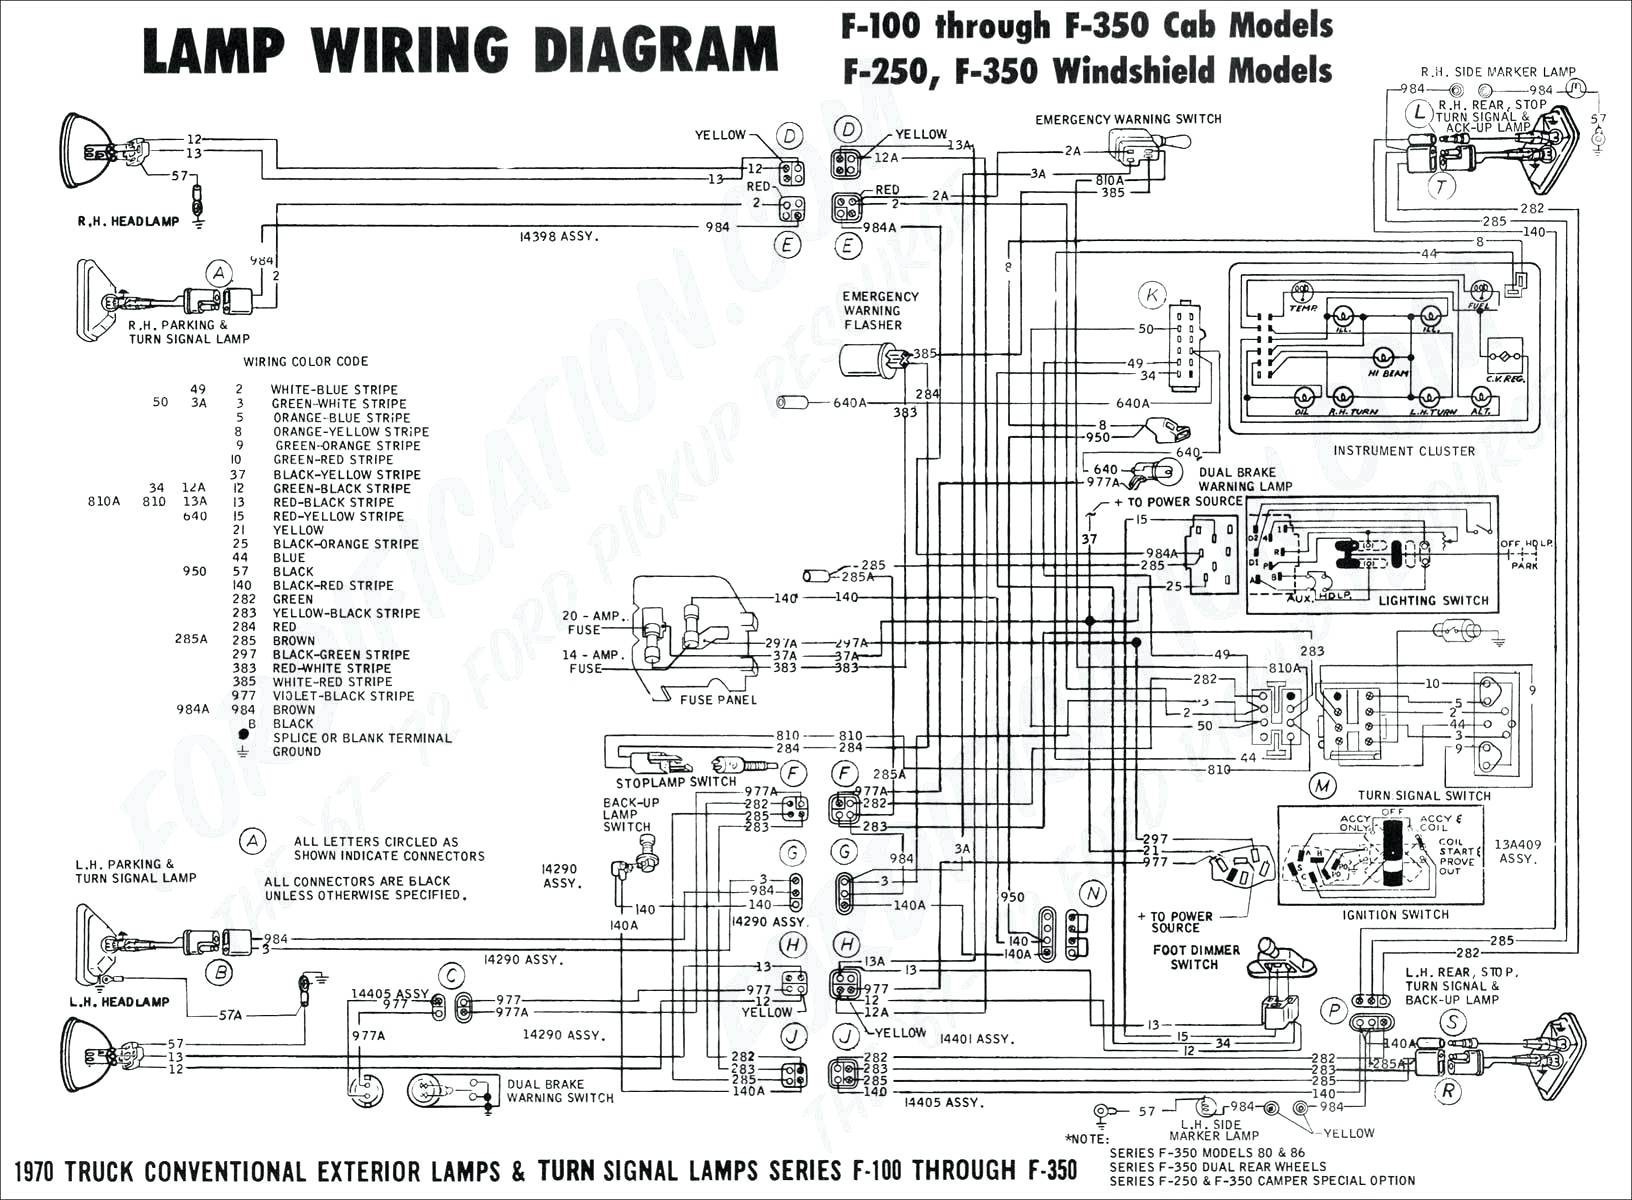 Celebrity Wiring Diagram on smart car diagrams, electrical diagrams, internet of things diagrams, electronic circuit diagrams, engine diagrams, hvac diagrams, troubleshooting diagrams, led circuit diagrams, friendship bracelet diagrams, gmc fuse box diagrams, transformer diagrams, sincgars radio configurations diagrams, switch diagrams, motor diagrams, honda motorcycle repair diagrams, lighting diagrams, battery diagrams, series and parallel circuits diagrams, pinout diagrams,